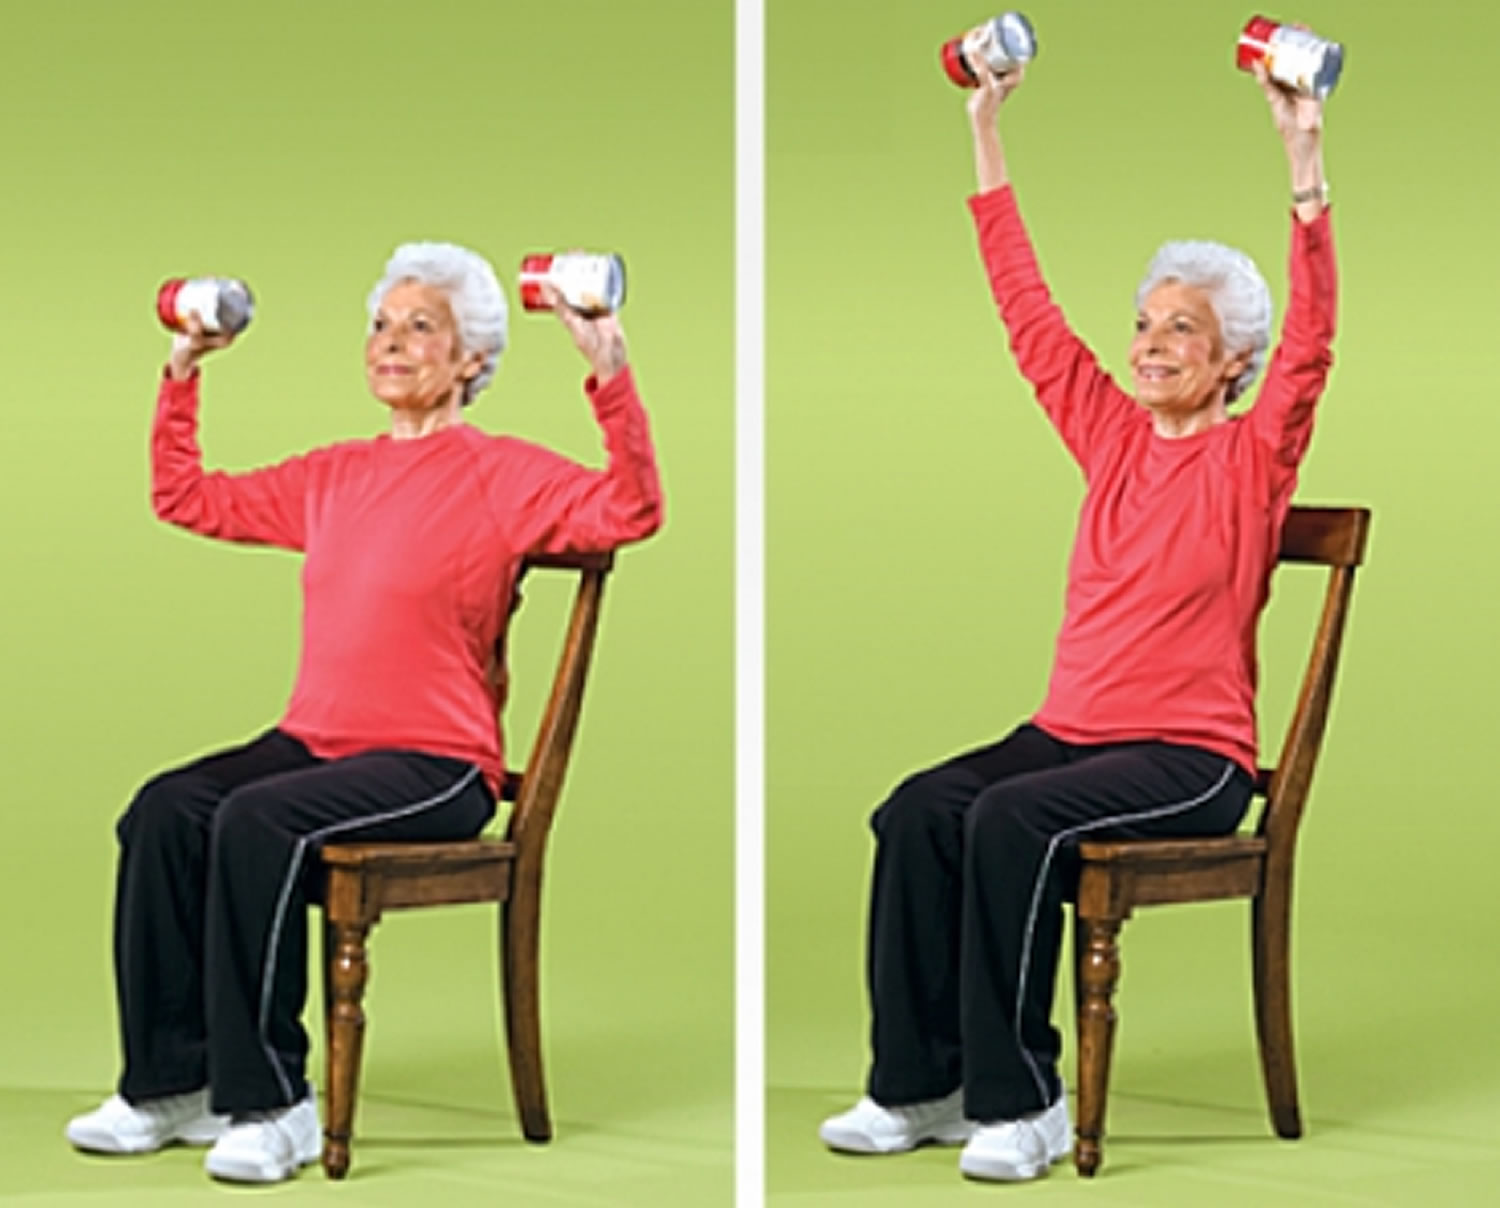 Overhead Arm Raise Strength Exercise for Seniors